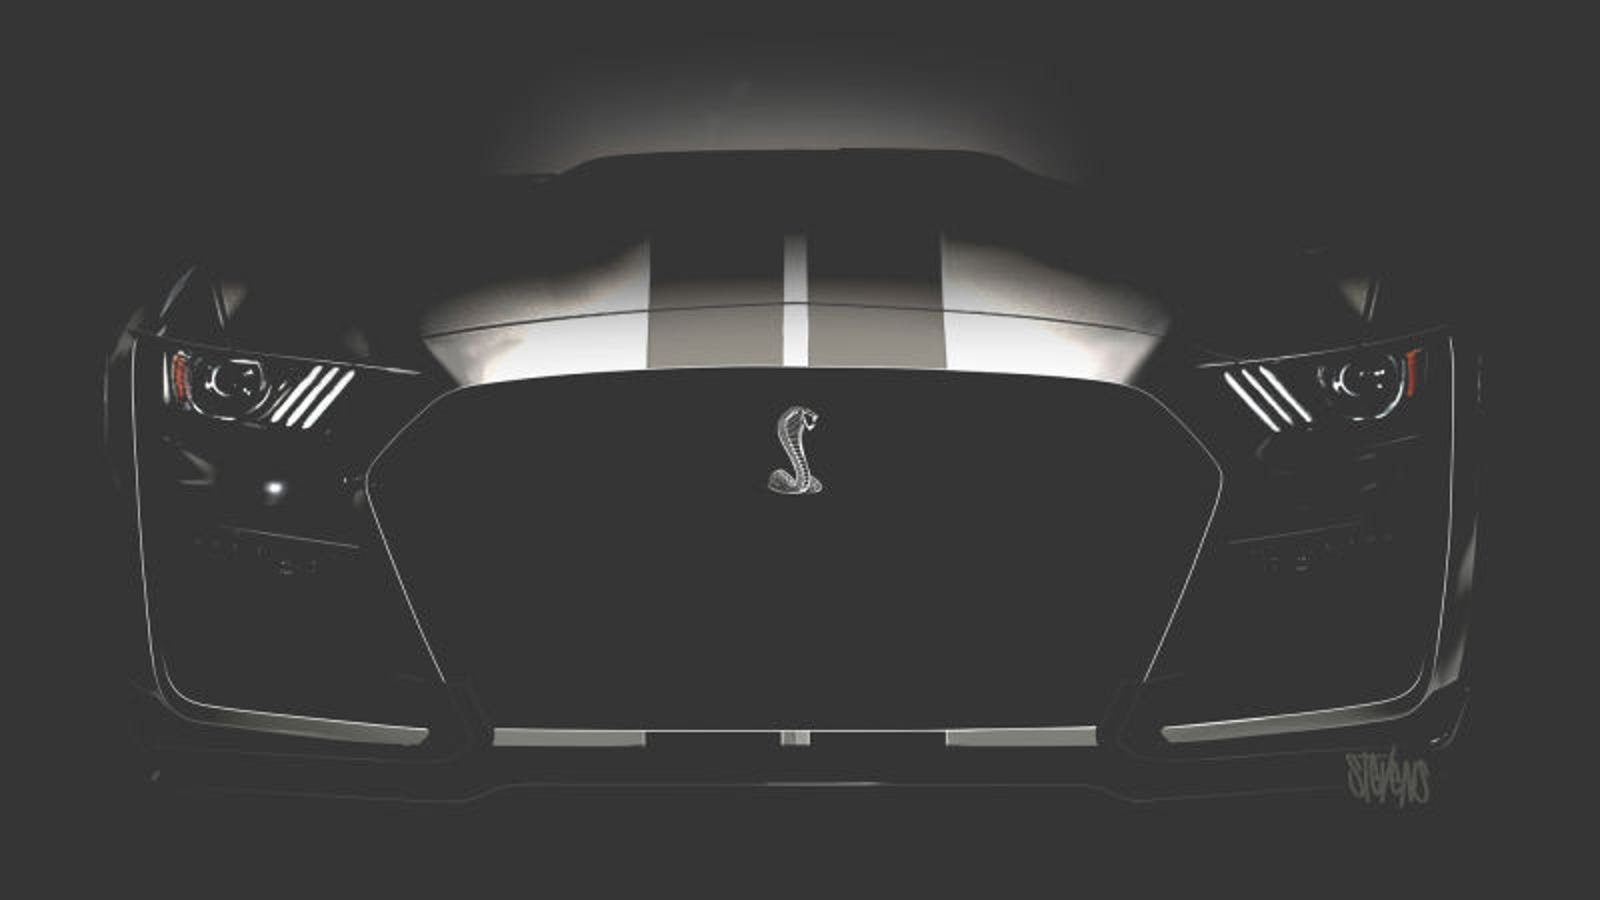 The 2020 ford mustang gt500 will have 720 hp if this spec sheet is for real